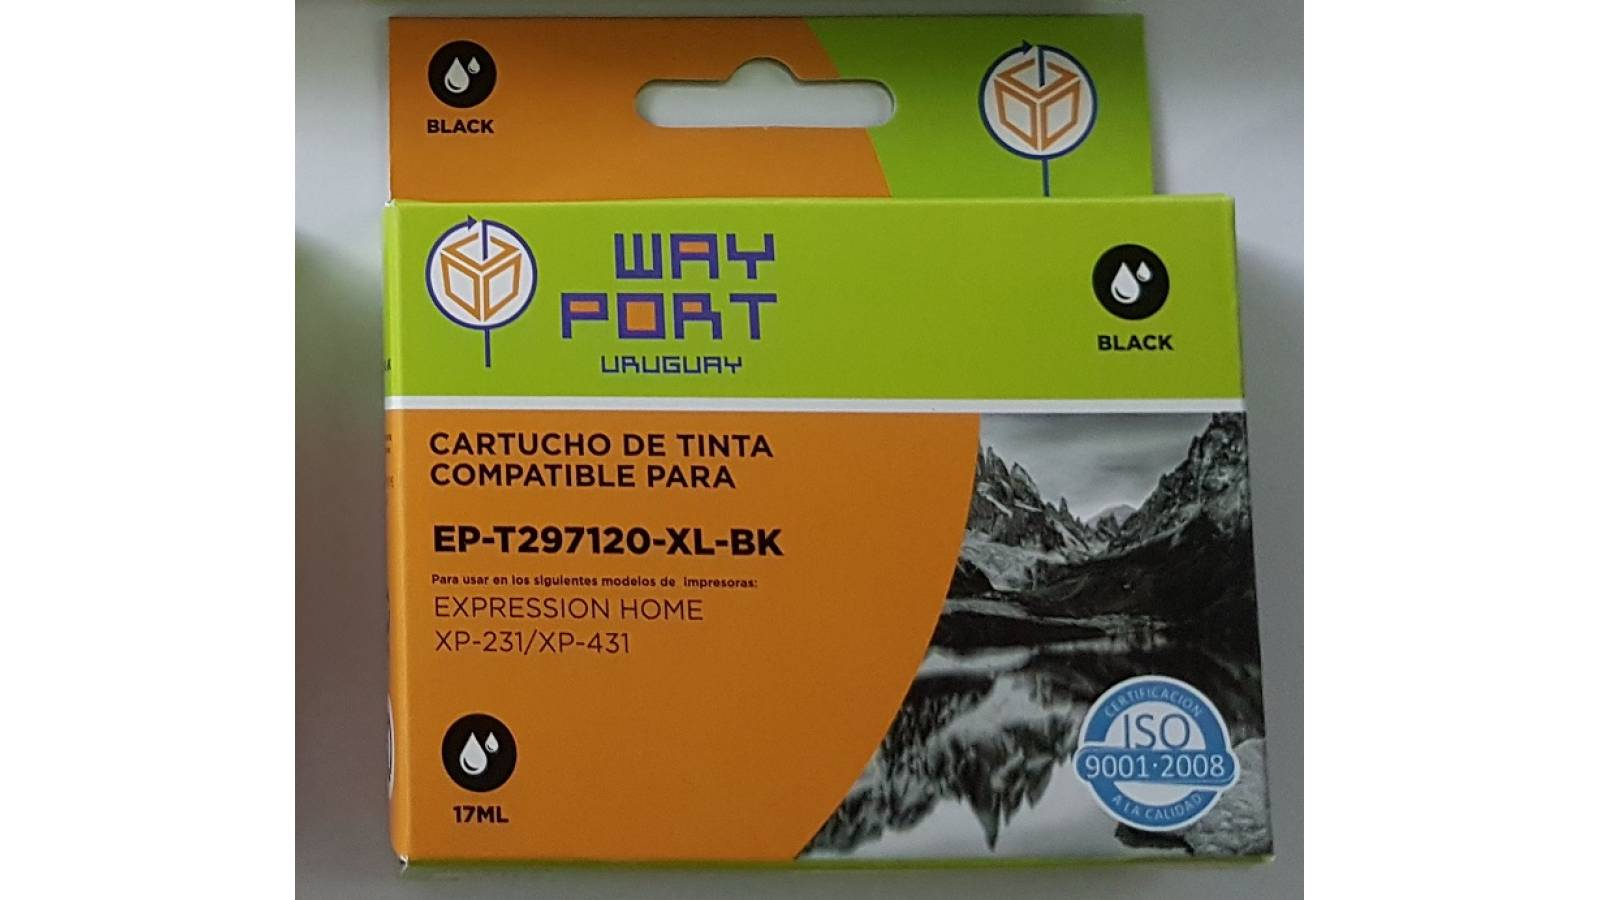 CARTUCHO COMPATIBLE WP PARA EPSON  XP231 / XP431 17ML - NEGRO